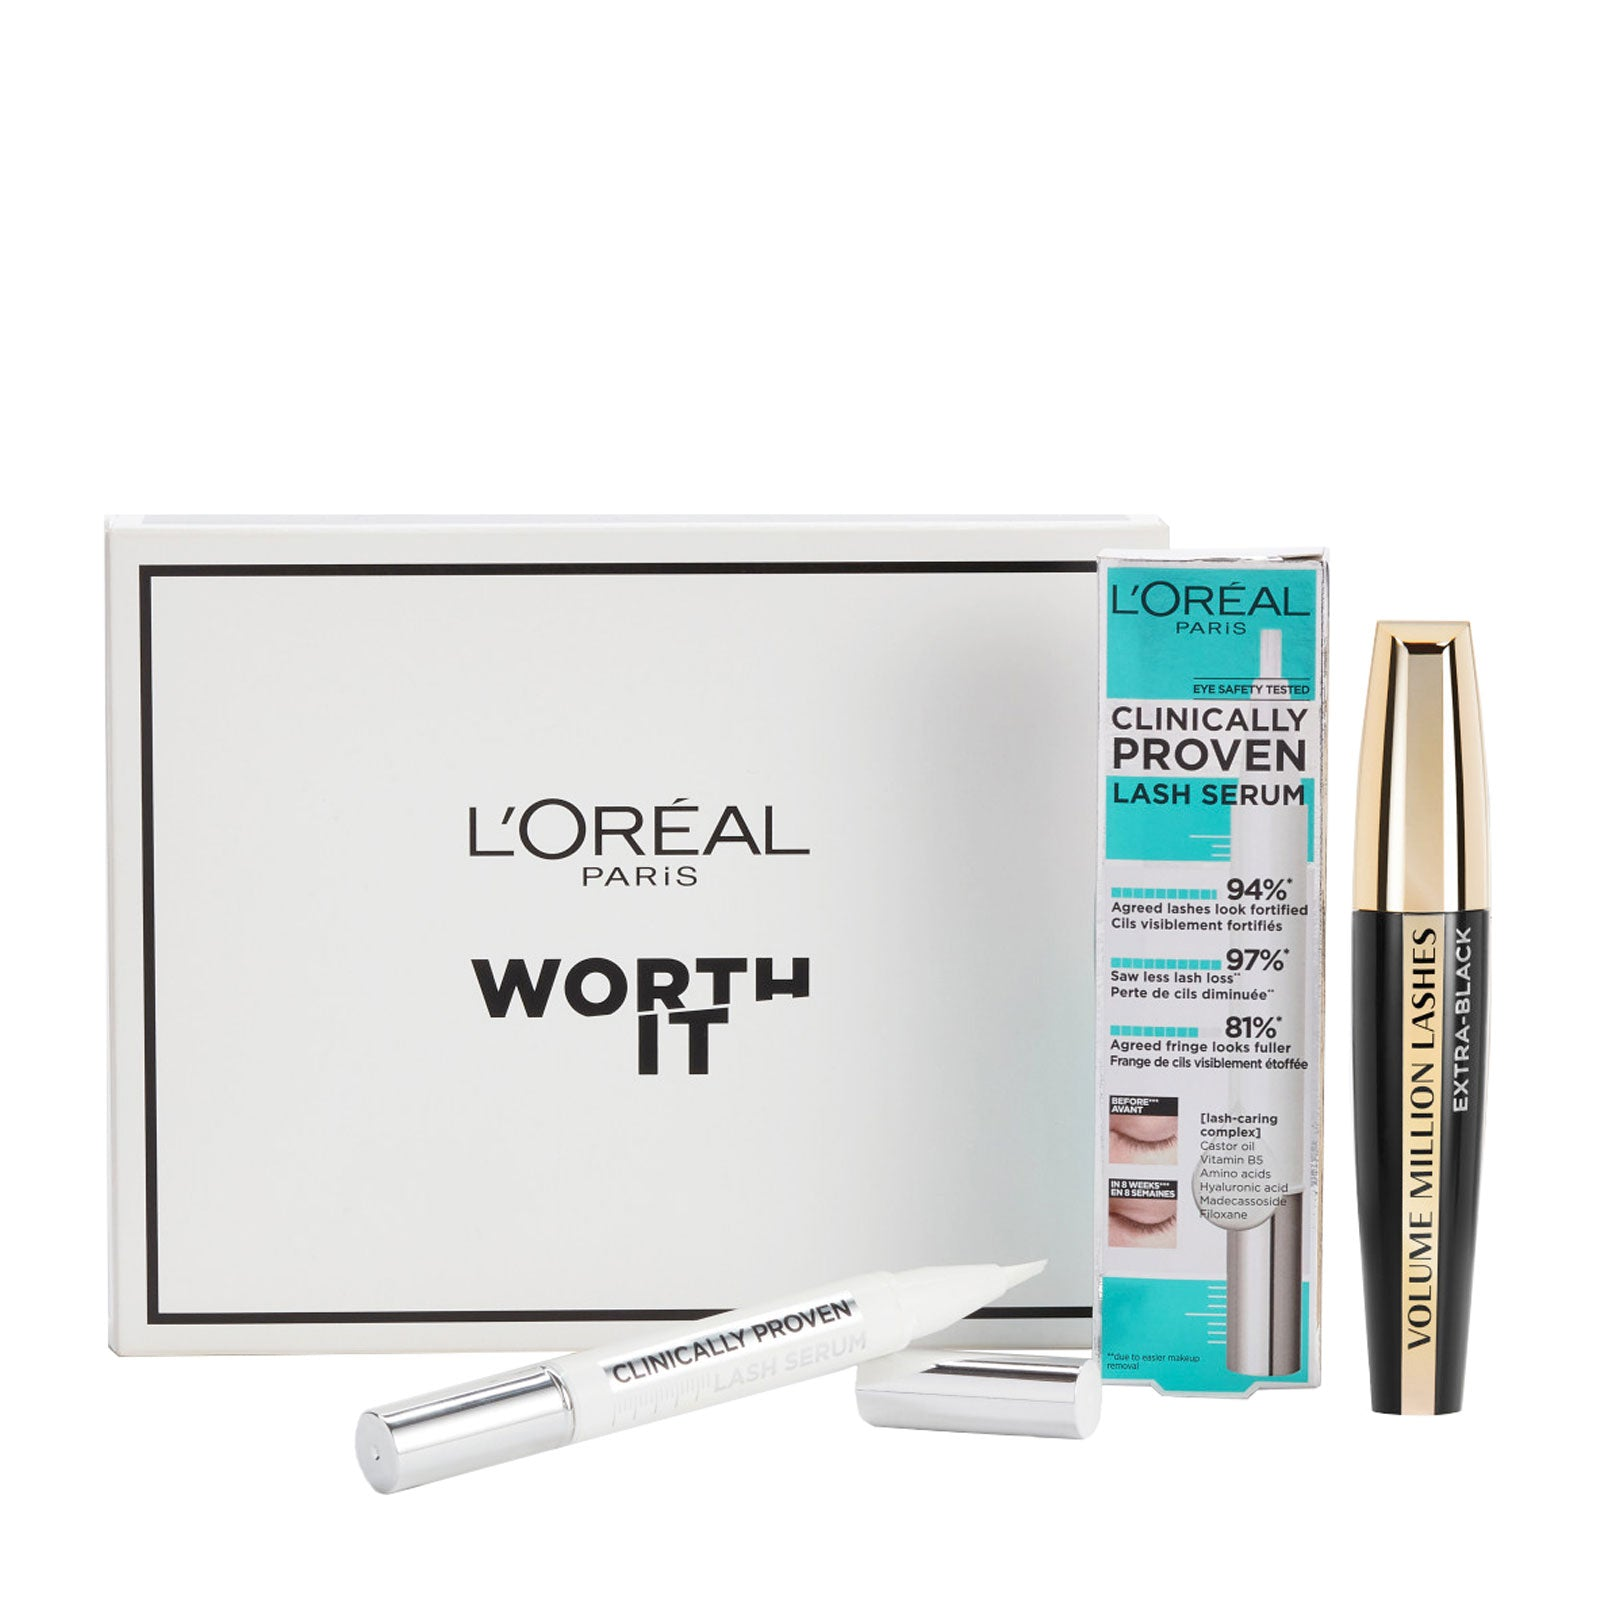 L'Oréal Paris Lash Care Eye Makeup Kit